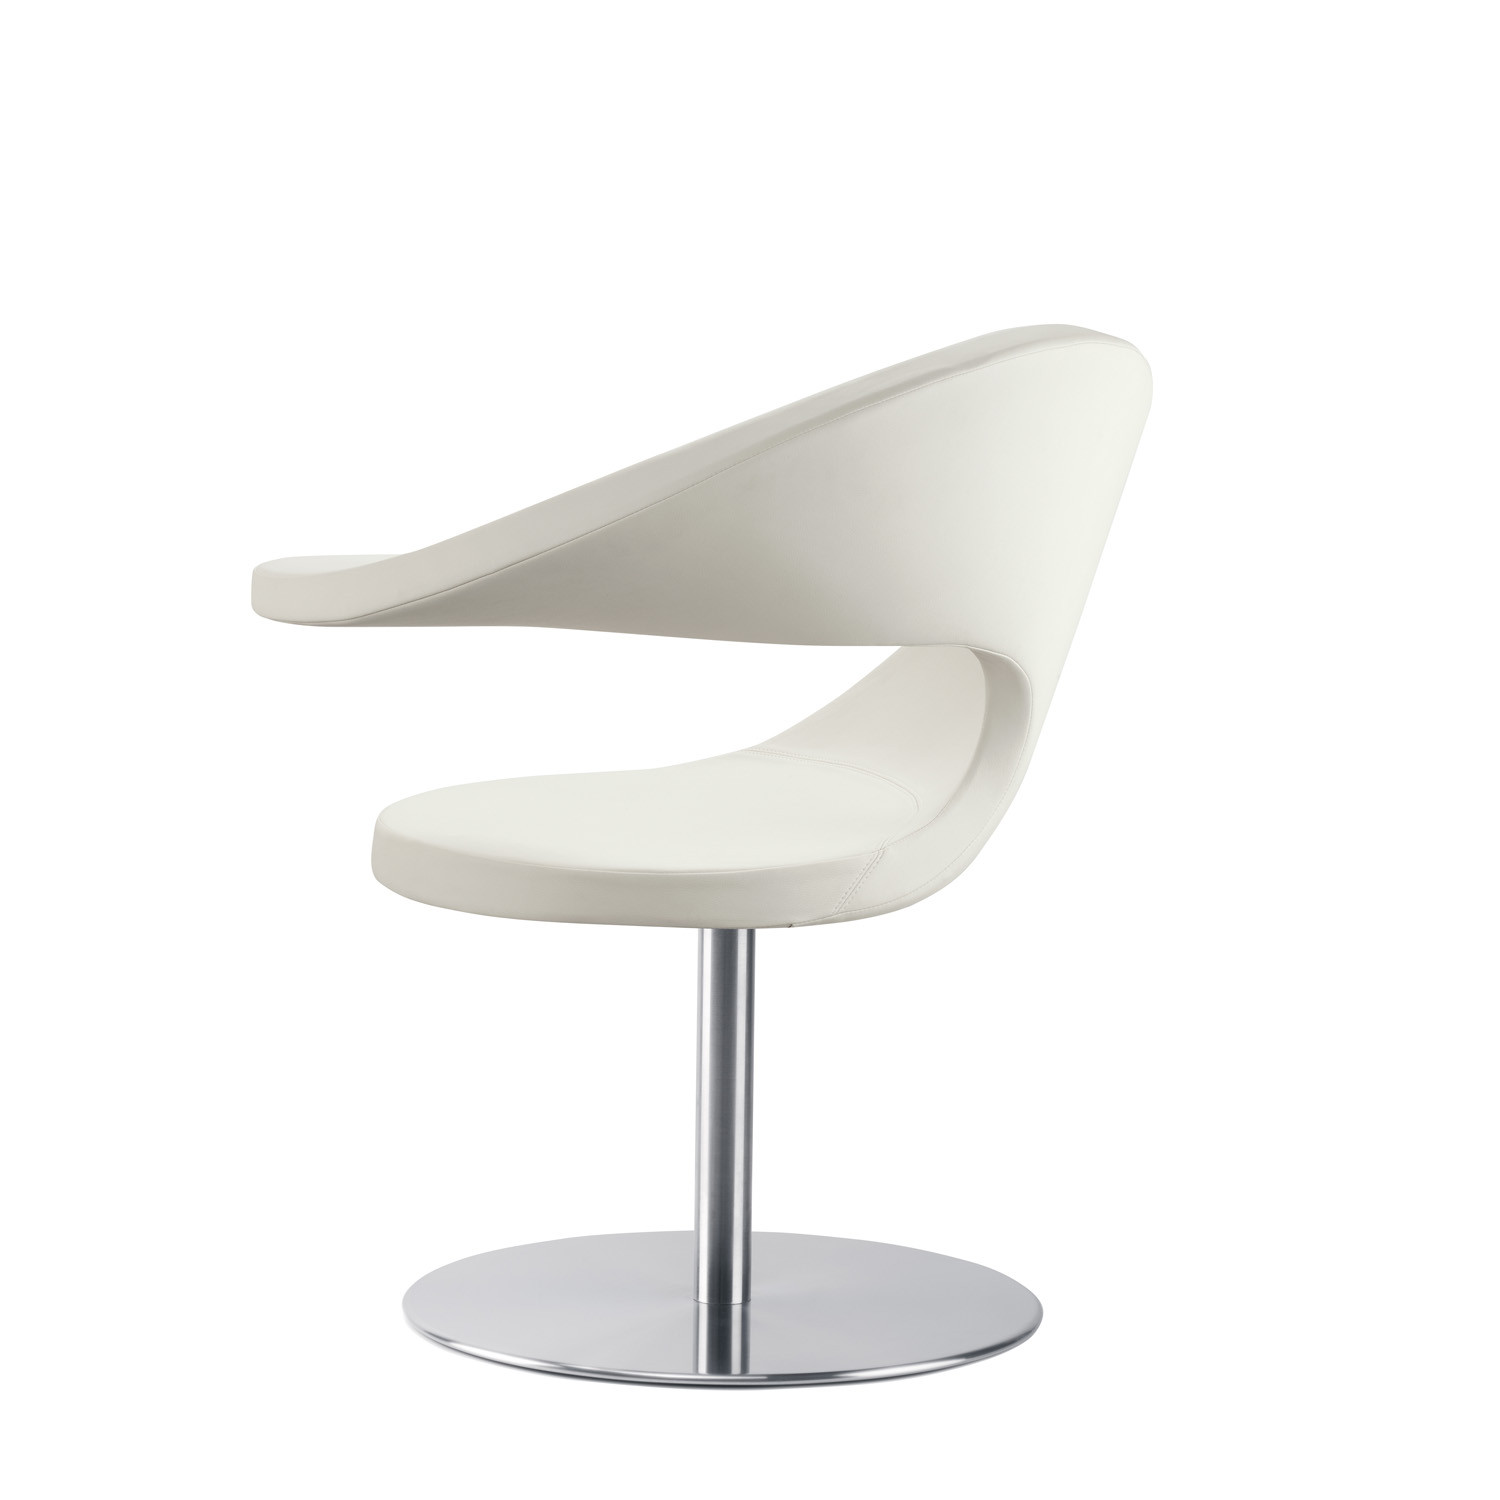 N@t Lounge Chair on round plate base